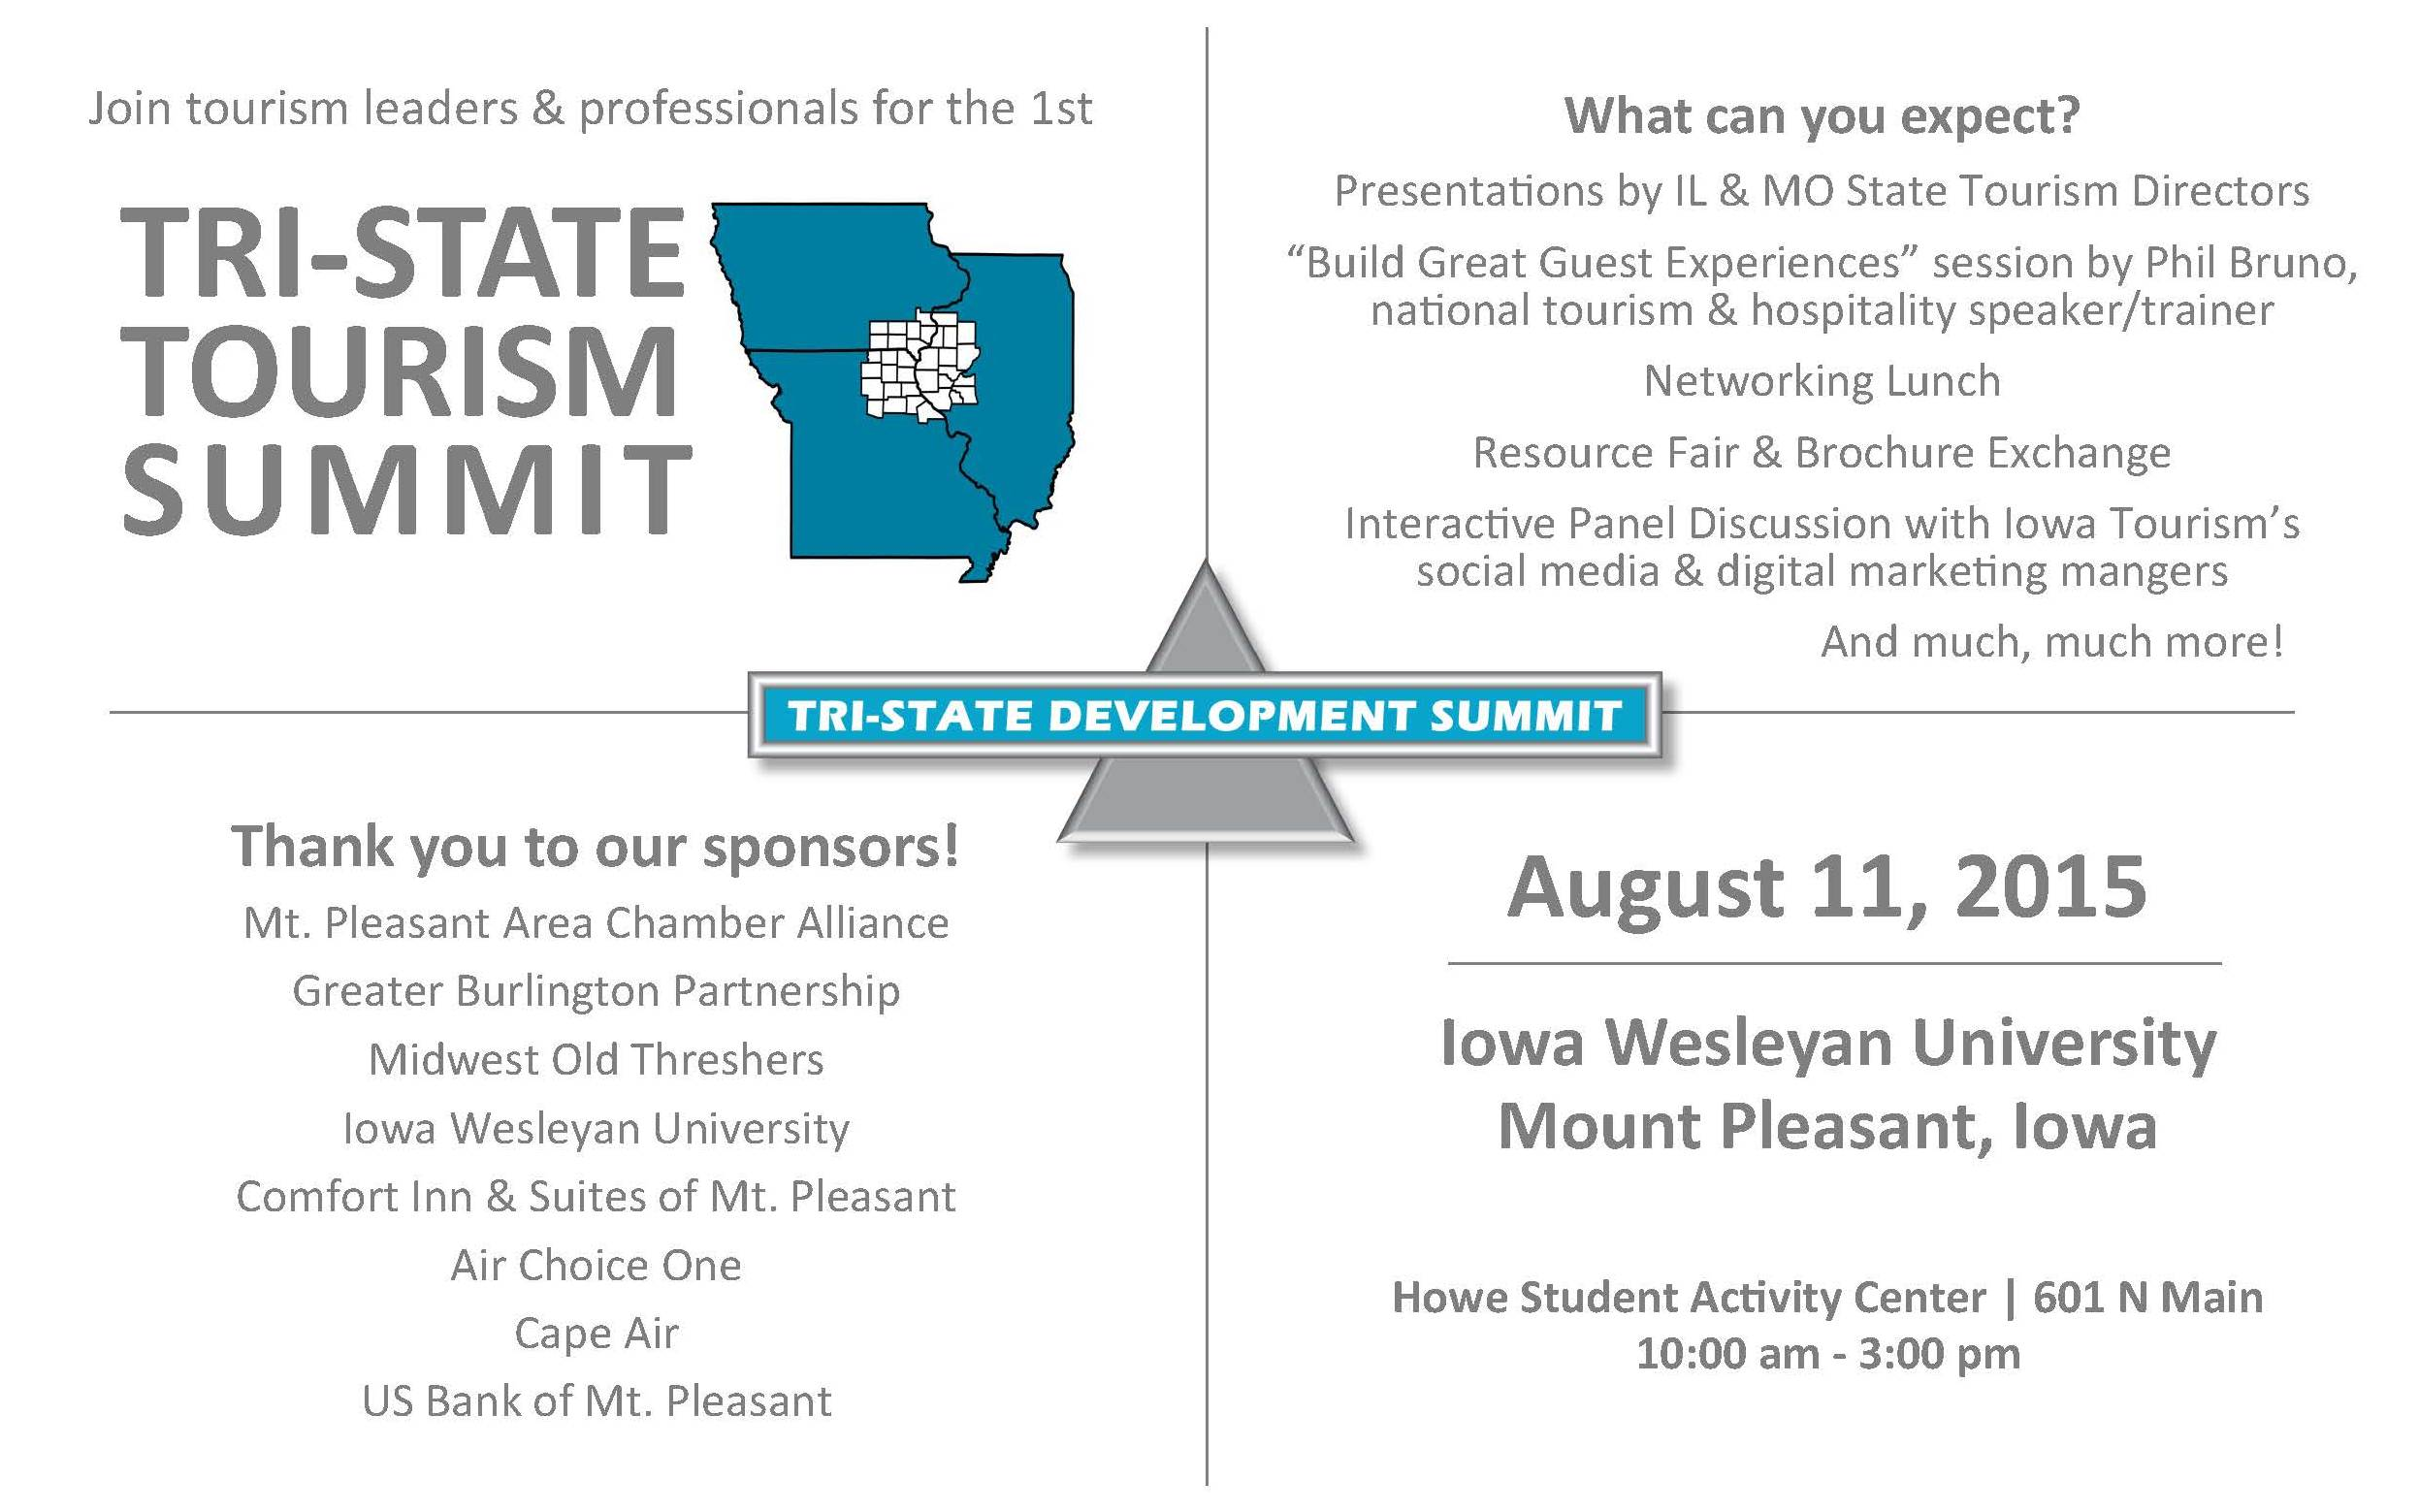 Tri-State Tourism Summit – August 11